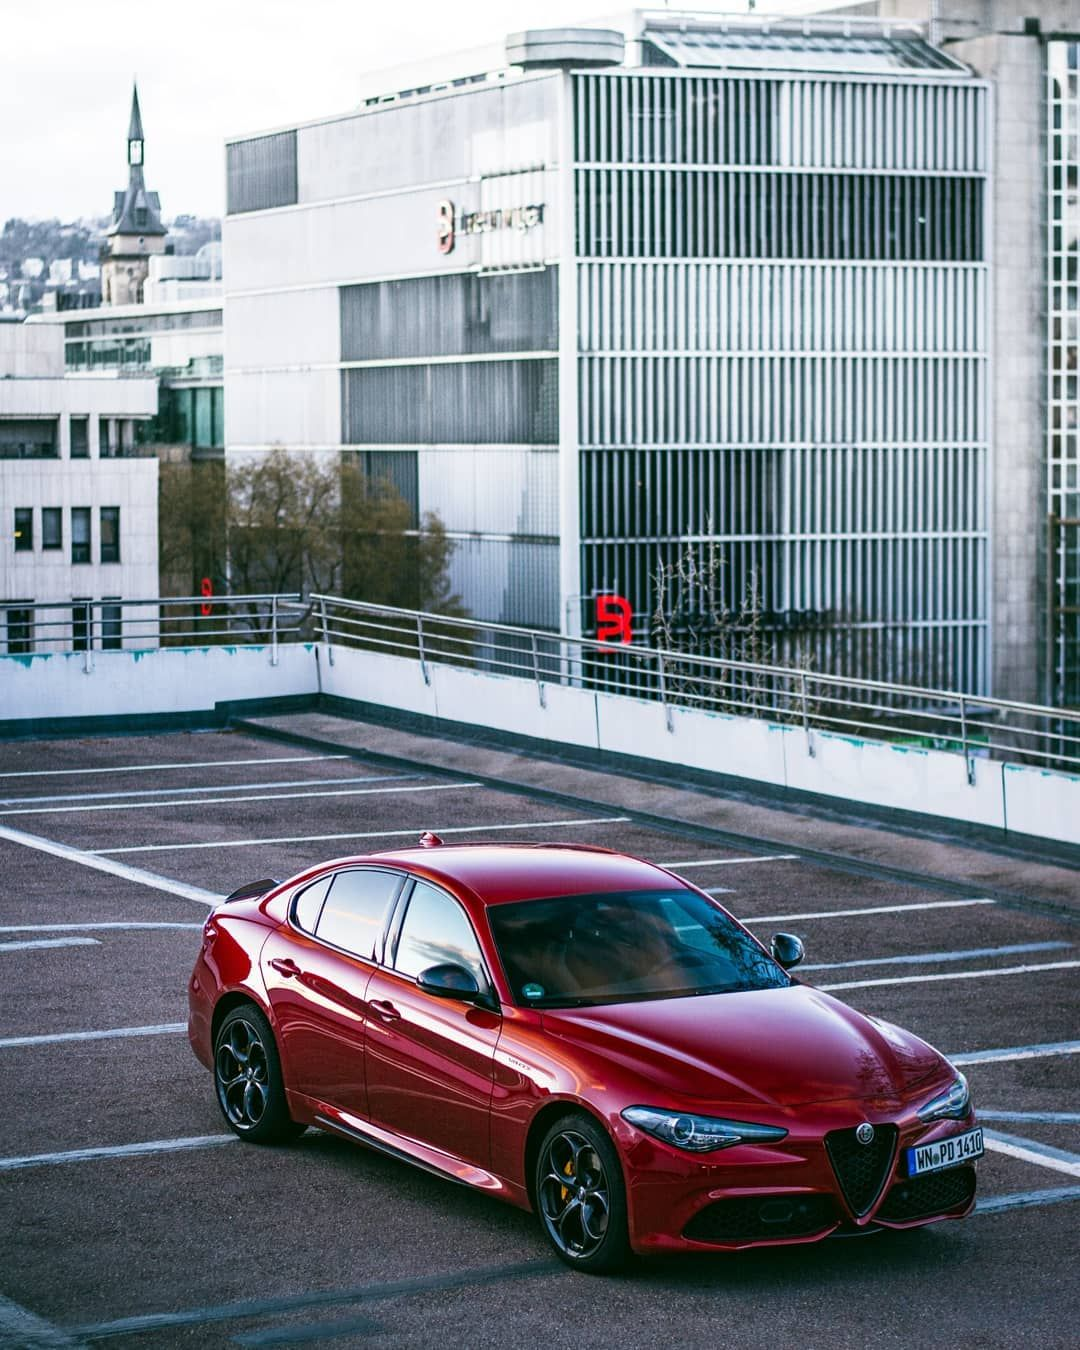 """Alfattitude® on Instagram: """"Our favourite Giulia at the moment, this  beautiful Veloce TI in Ro… 